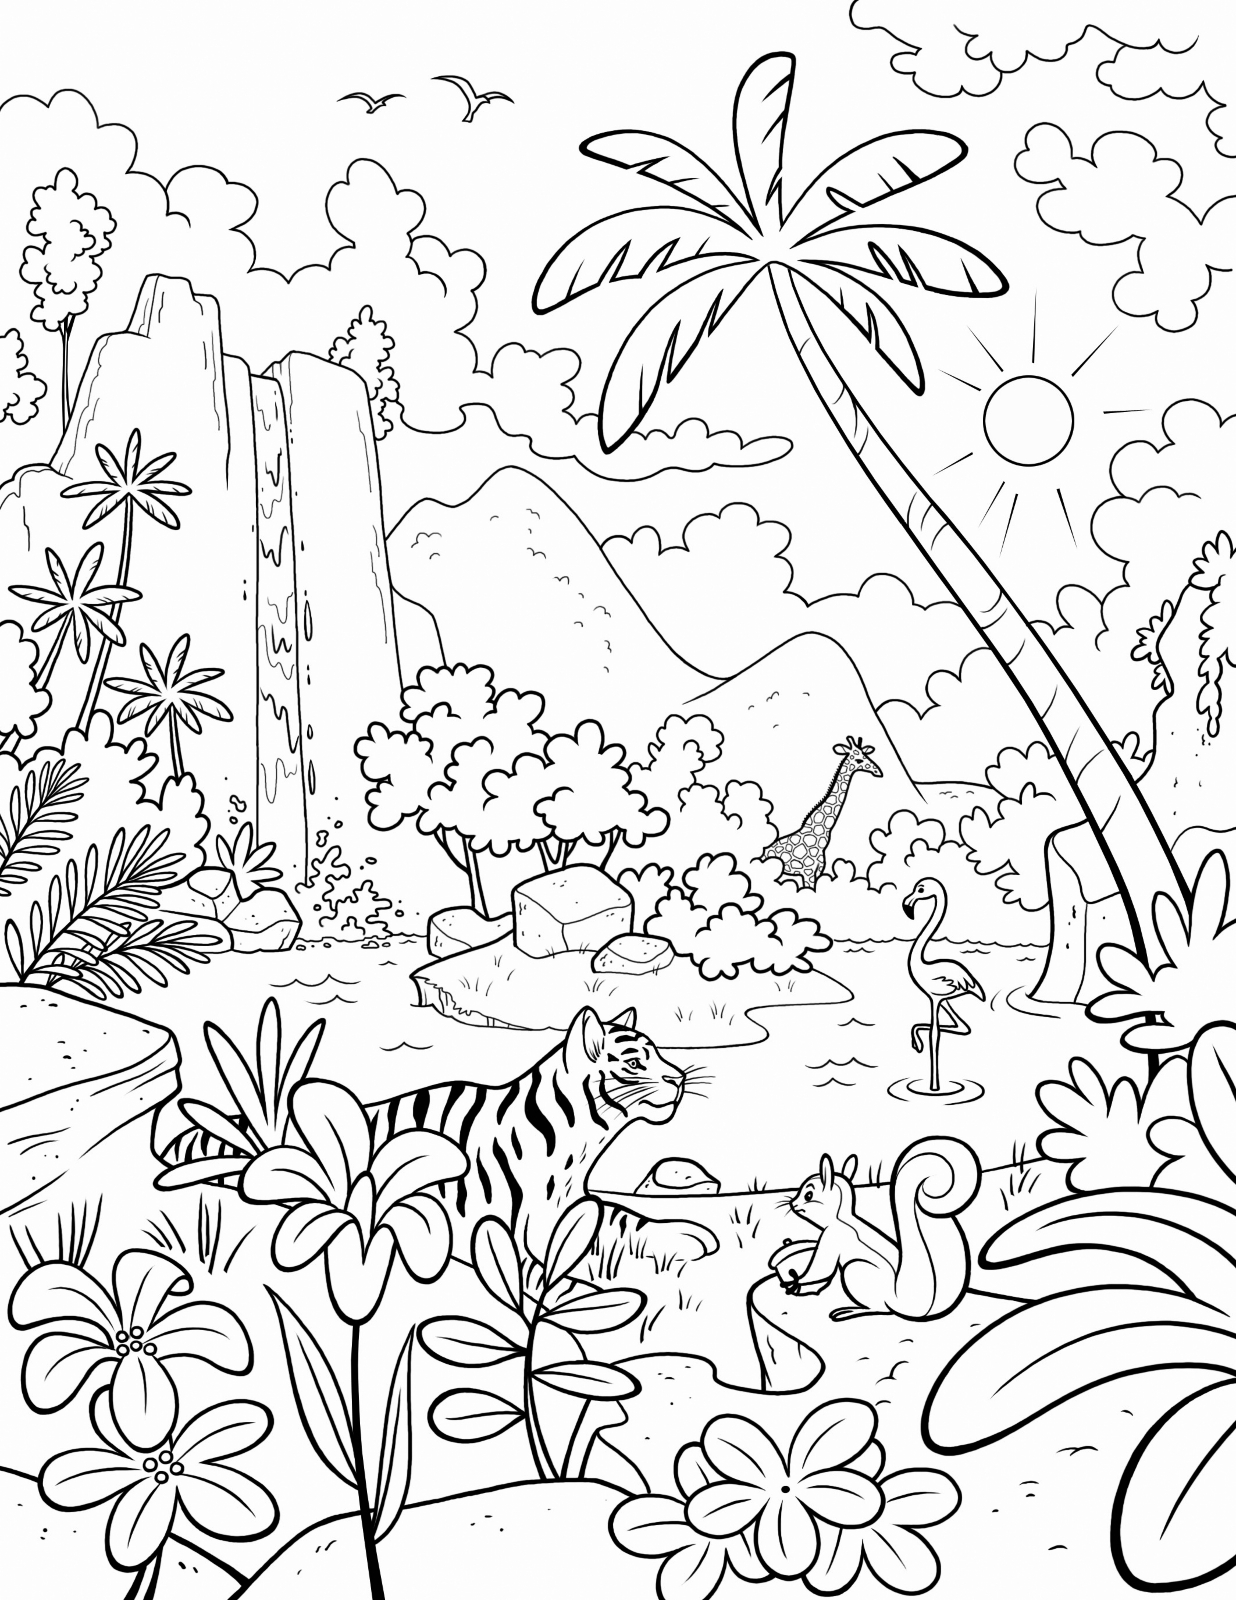 Line Art Year 2 : Jungle